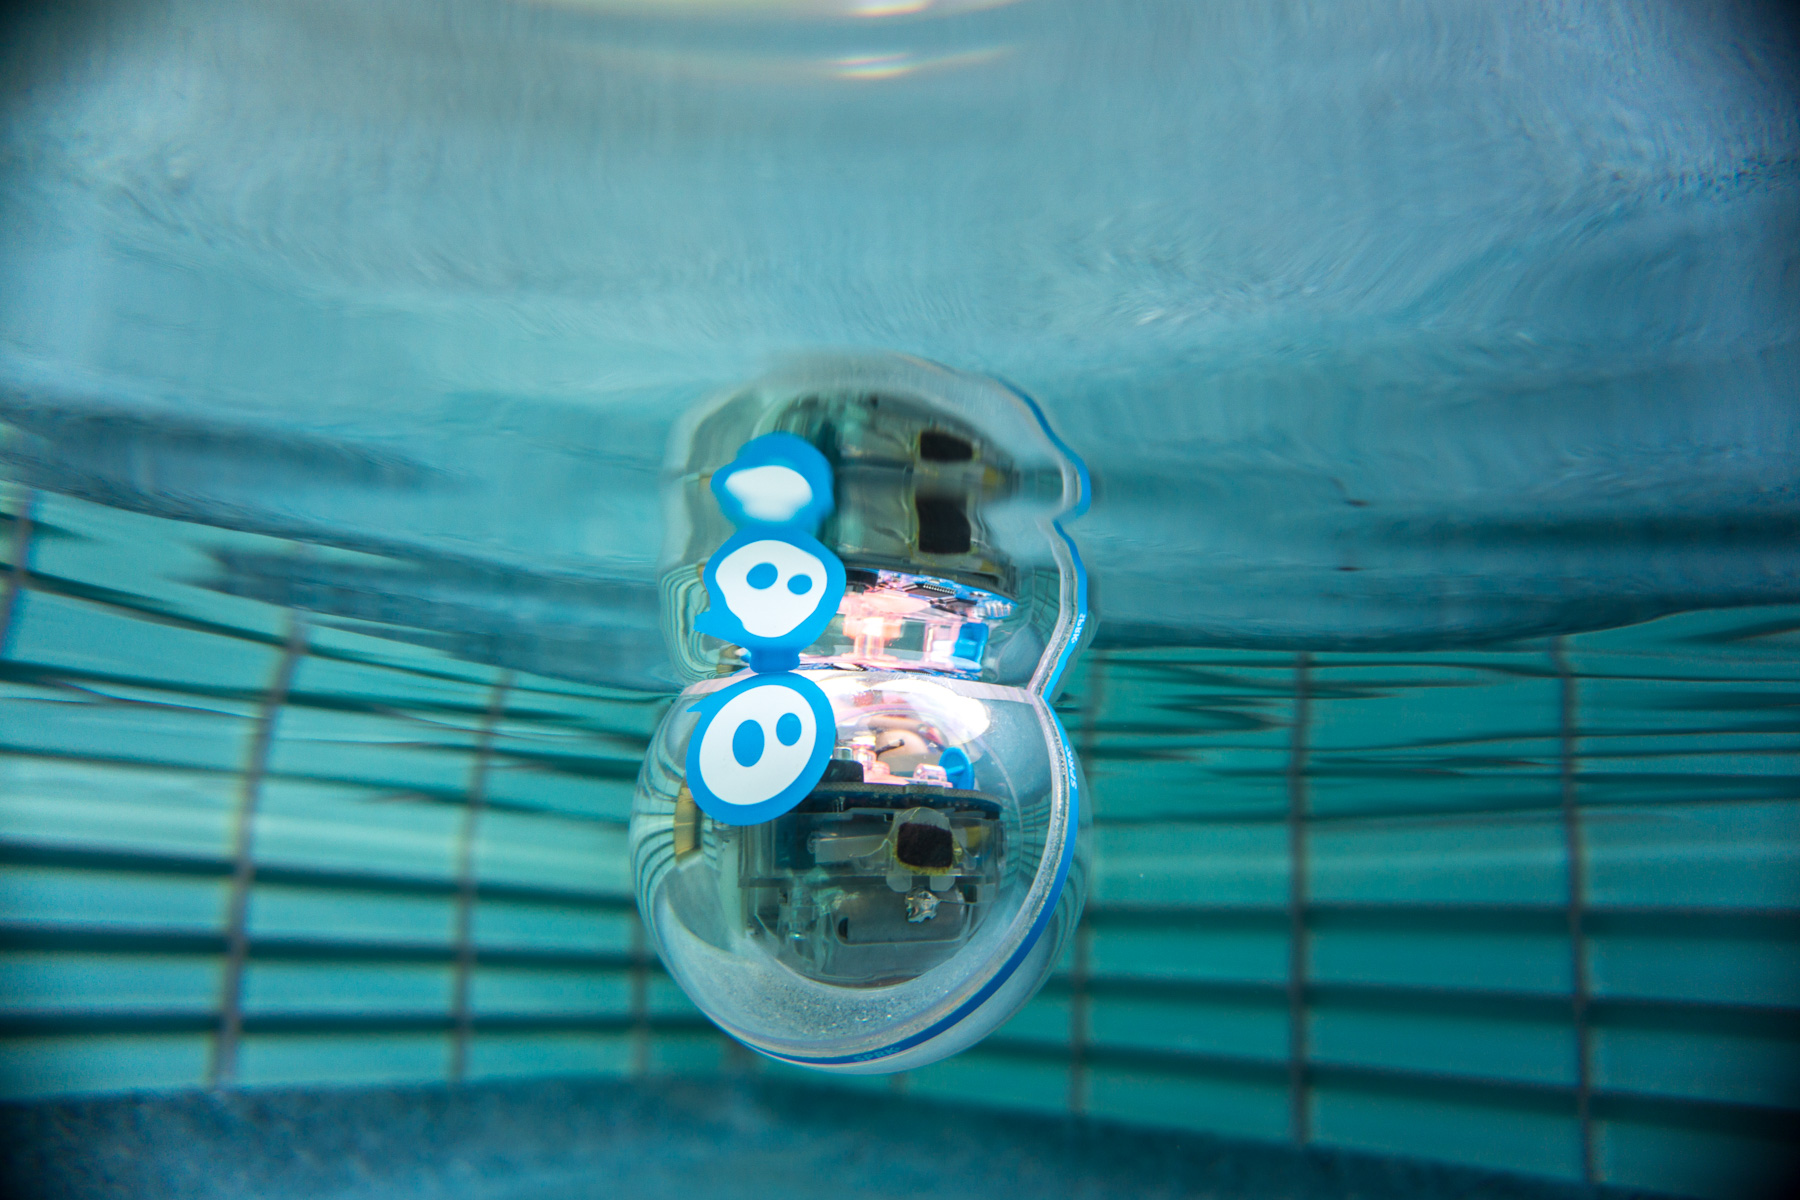 Sphero SPRK+ product photo floating underwater in pool.